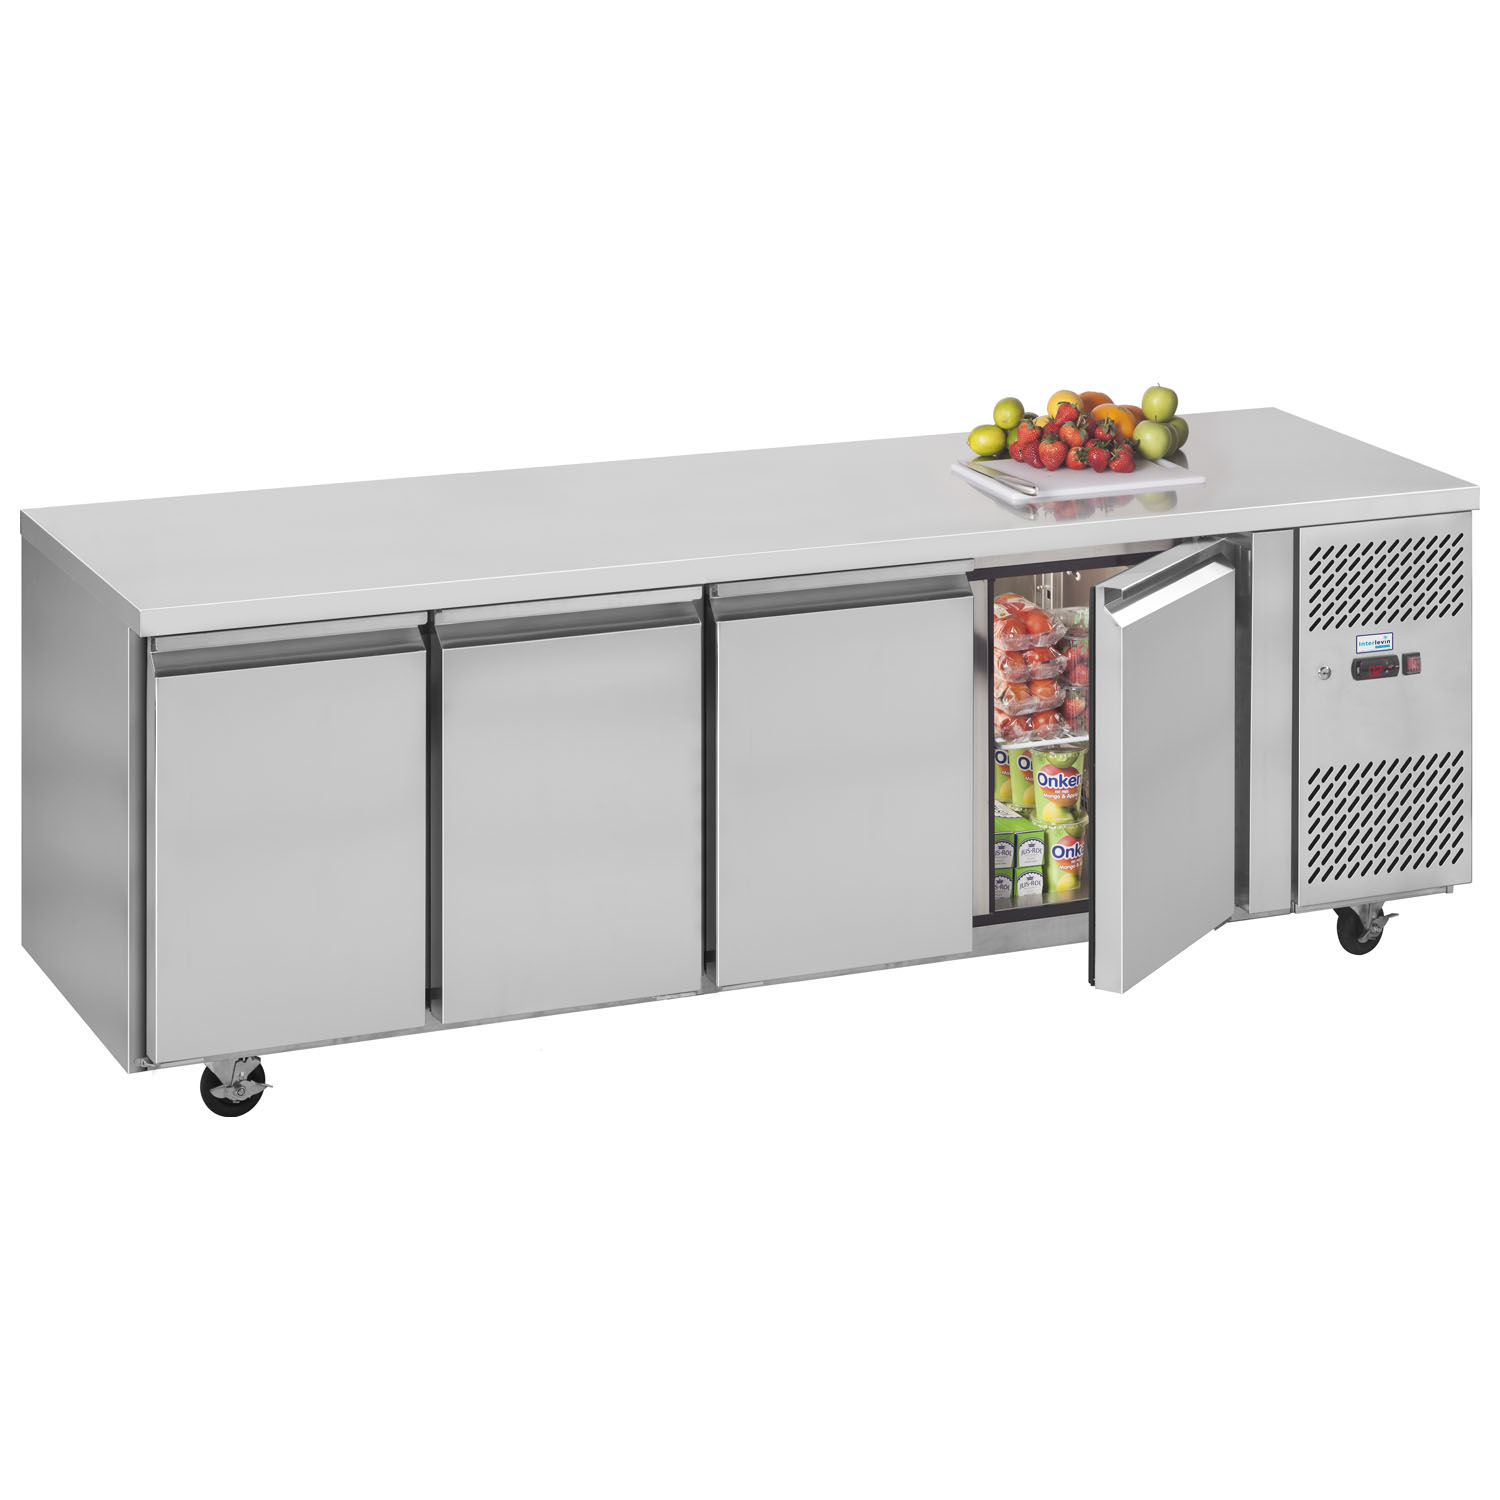 Interlevin PH40 Gastronorm Stainless Steel Counter 4-Door Chiller stocked